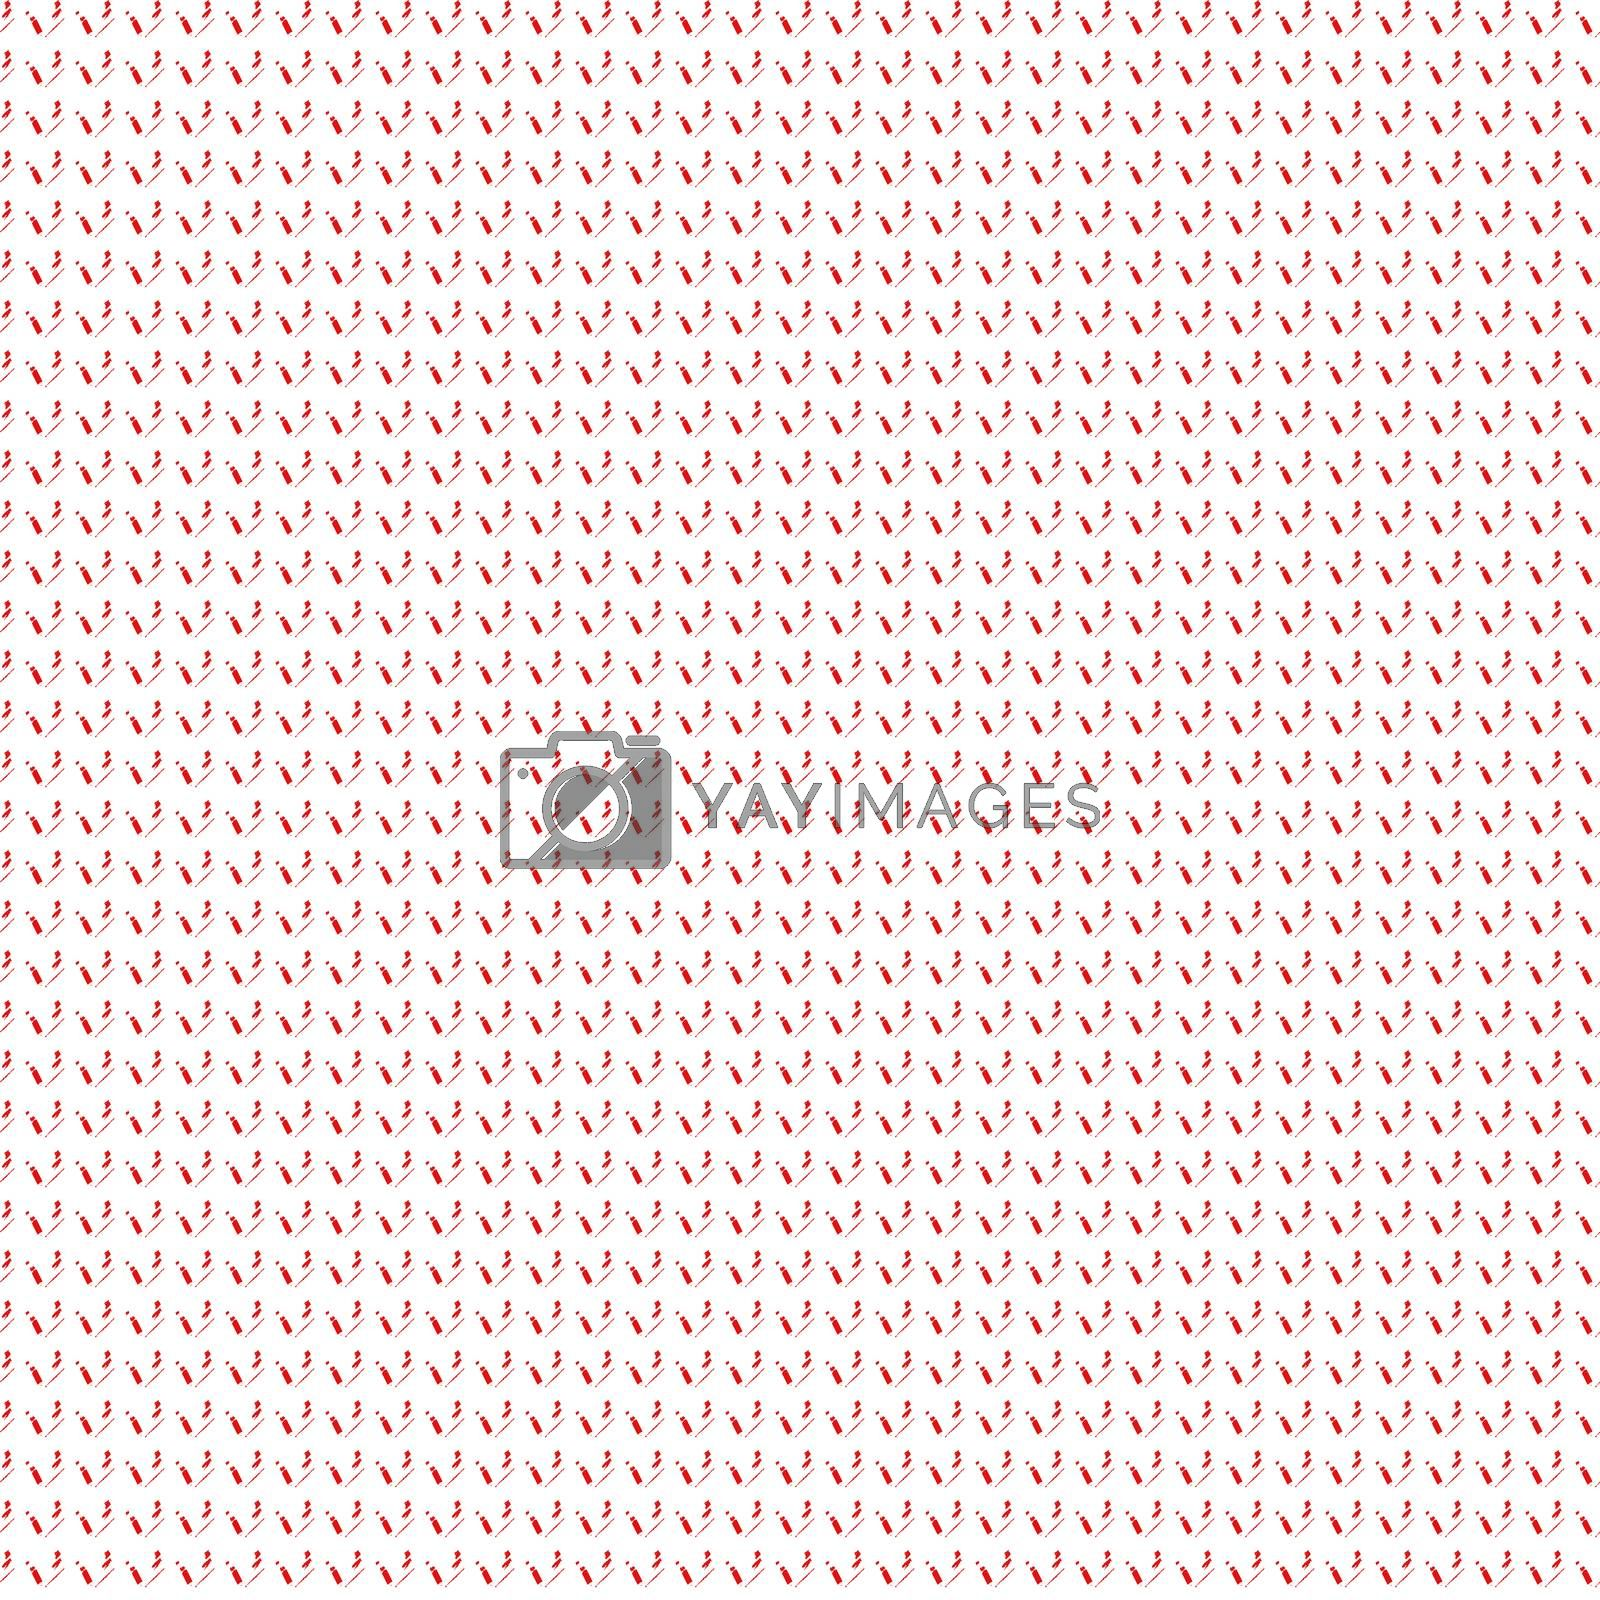 Royalty free image of Pattern by ankihoglund